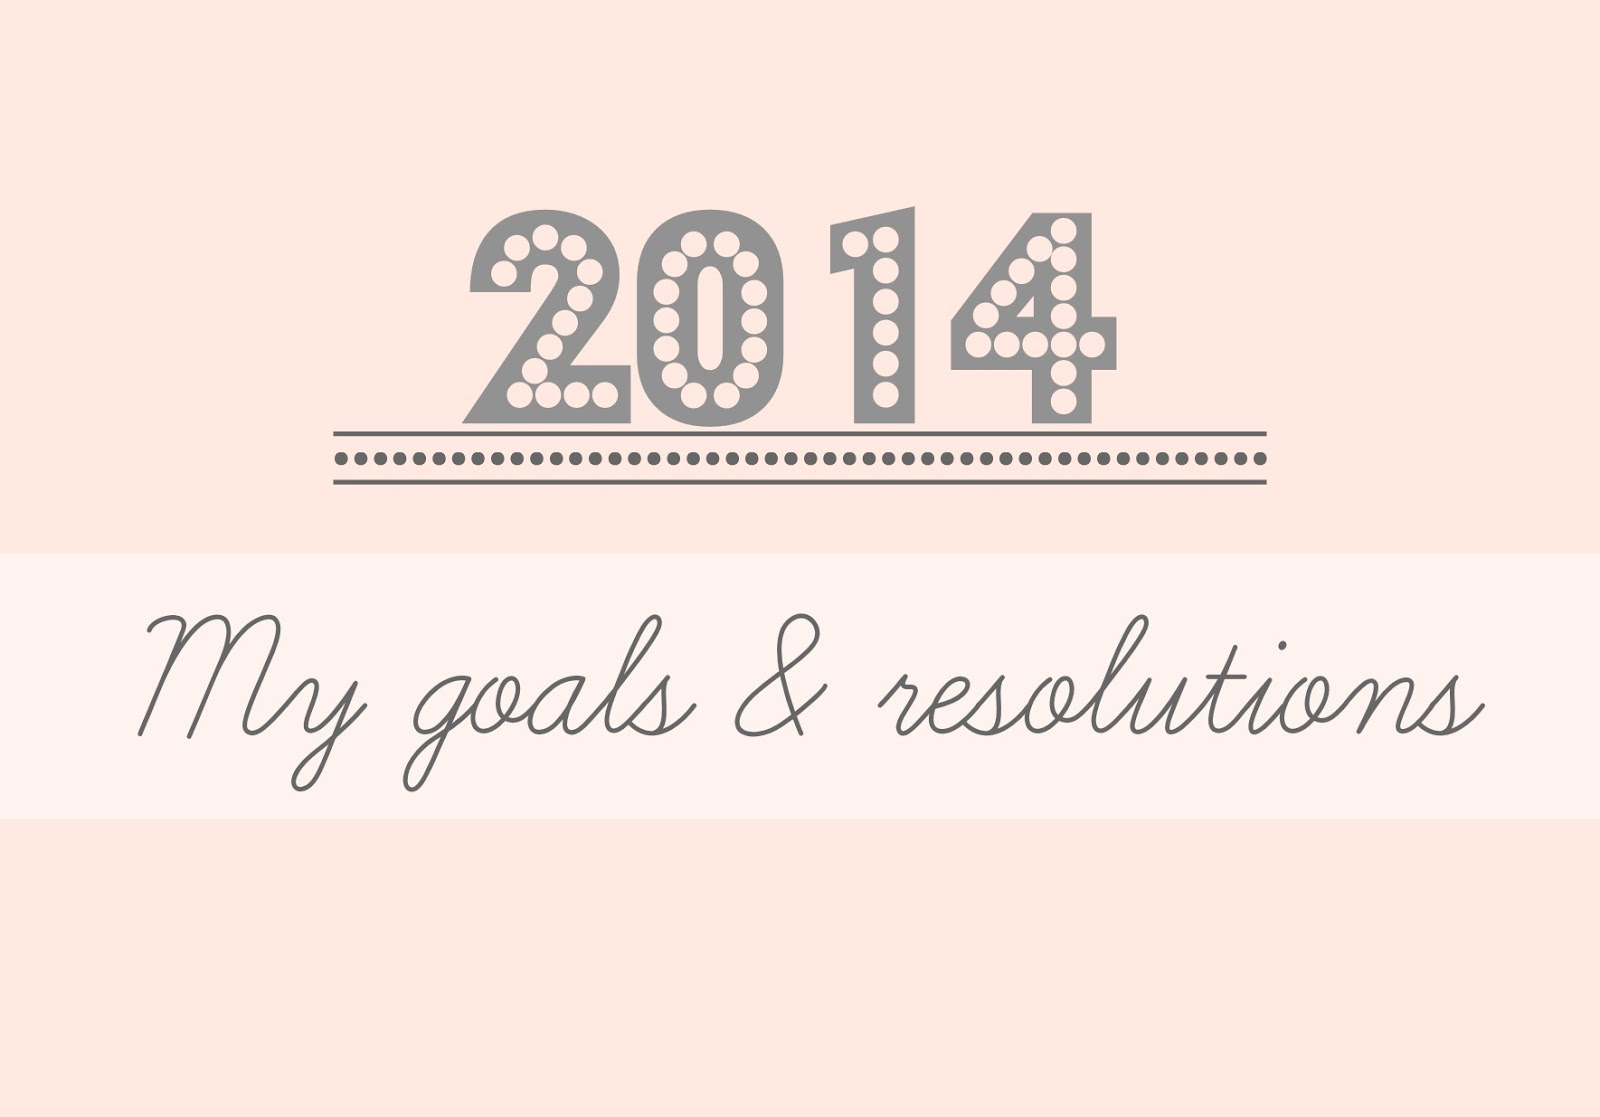 New Year Resolutions, New Year Goals & Resolutions, New Year Resolutions 2014